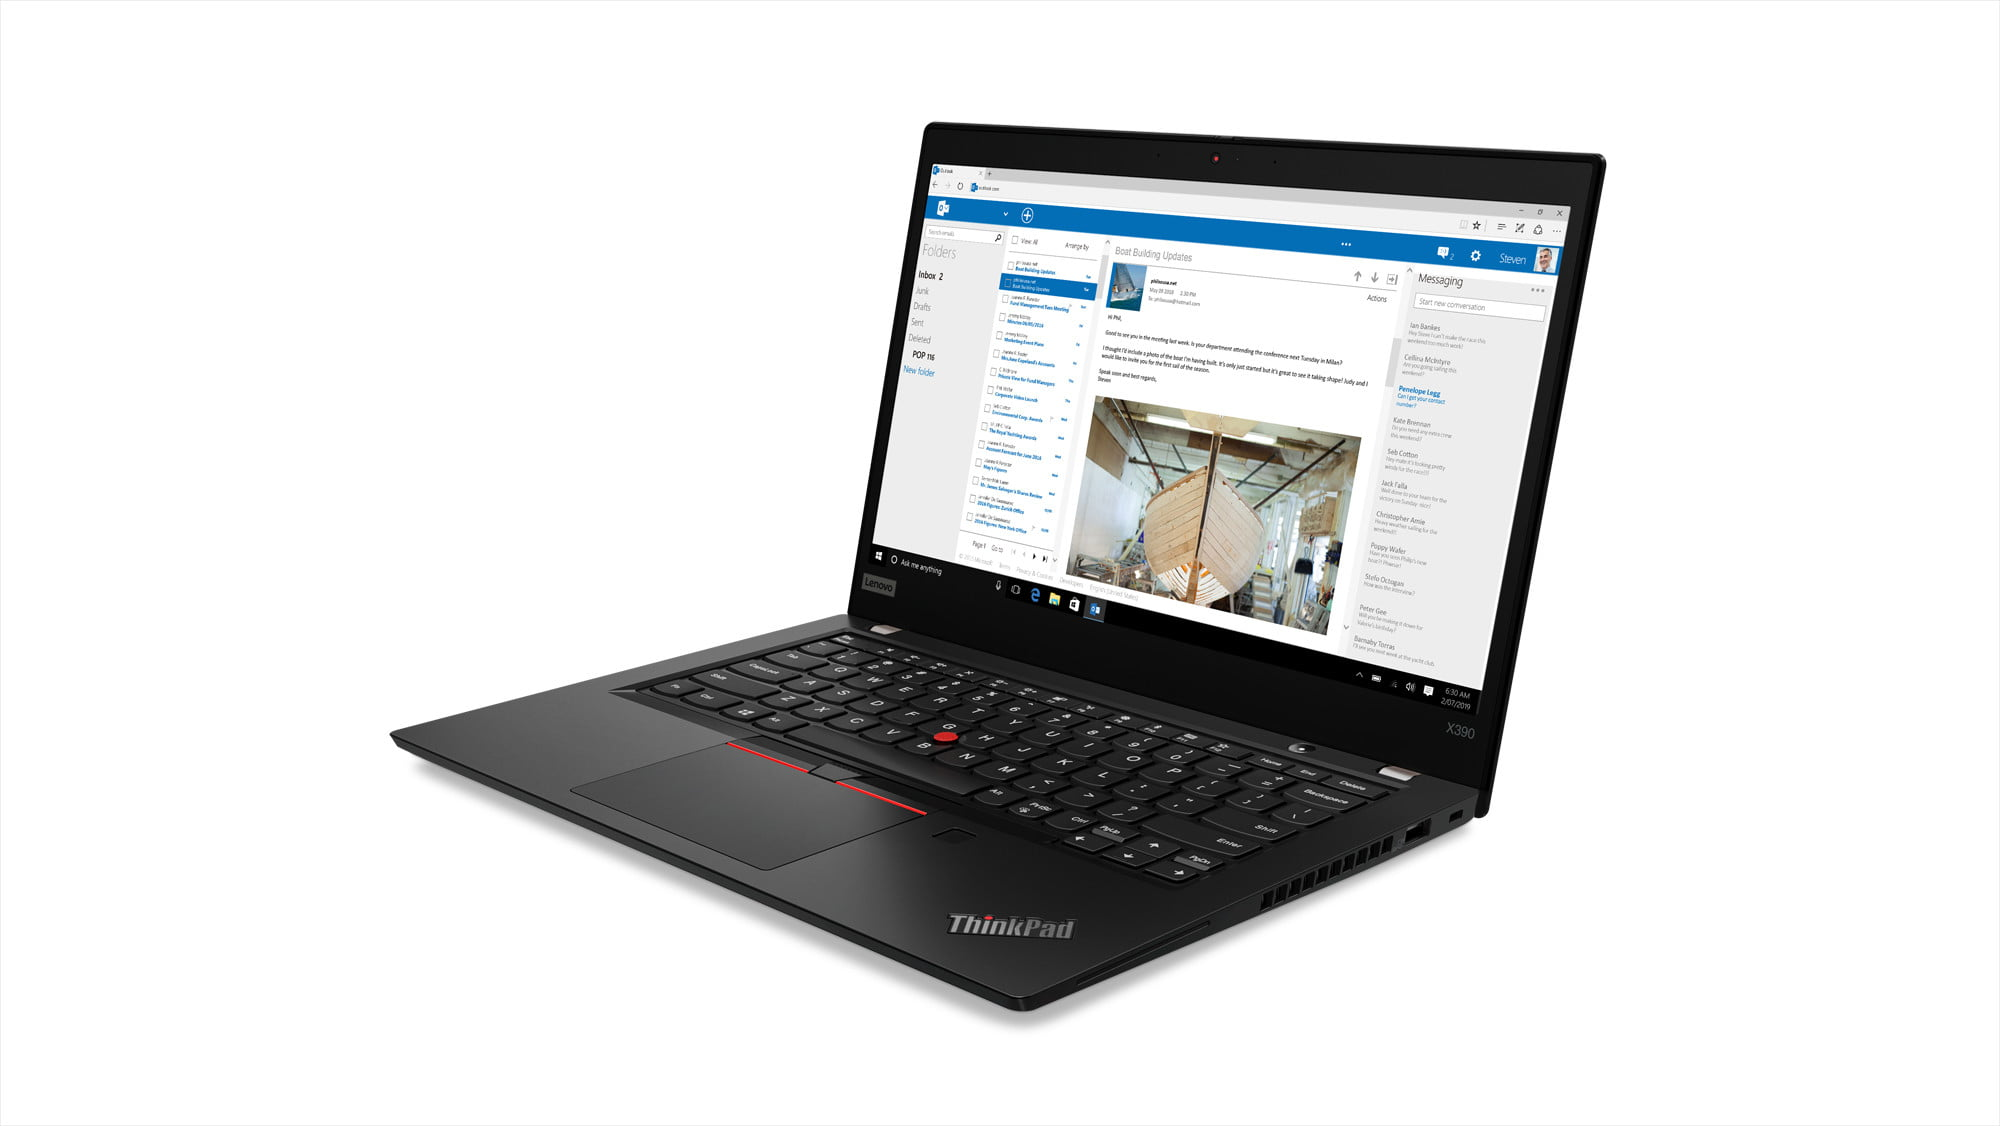 lenovo annouces new thinkpads with 10th gen cometlake thinkpad x390 4